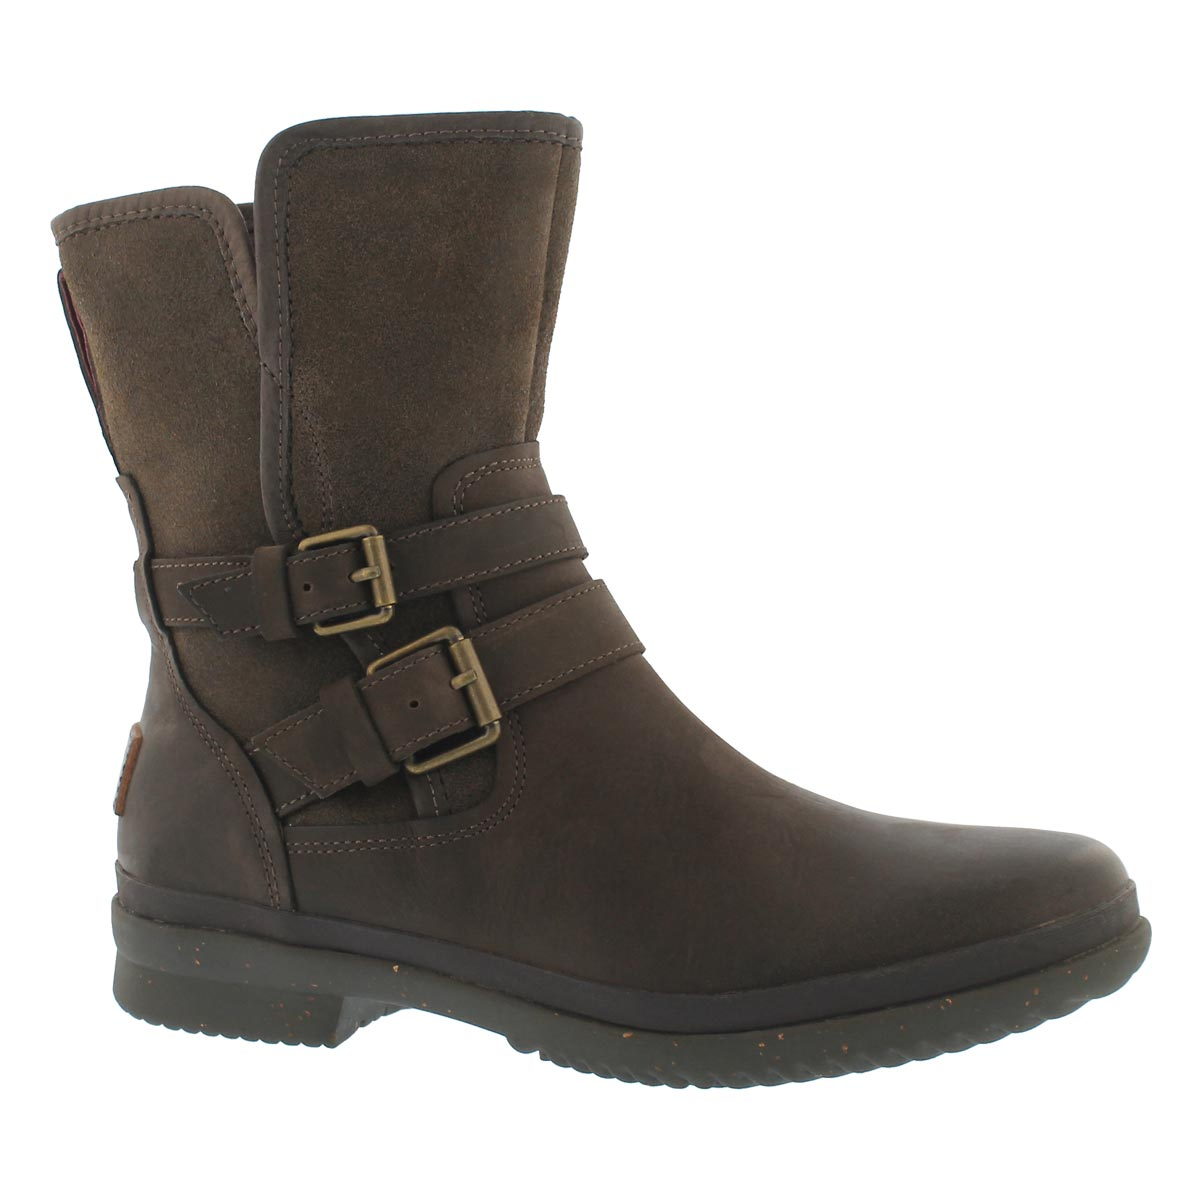 14ce9472e5e Women's SIMMENS stout waterproof boots